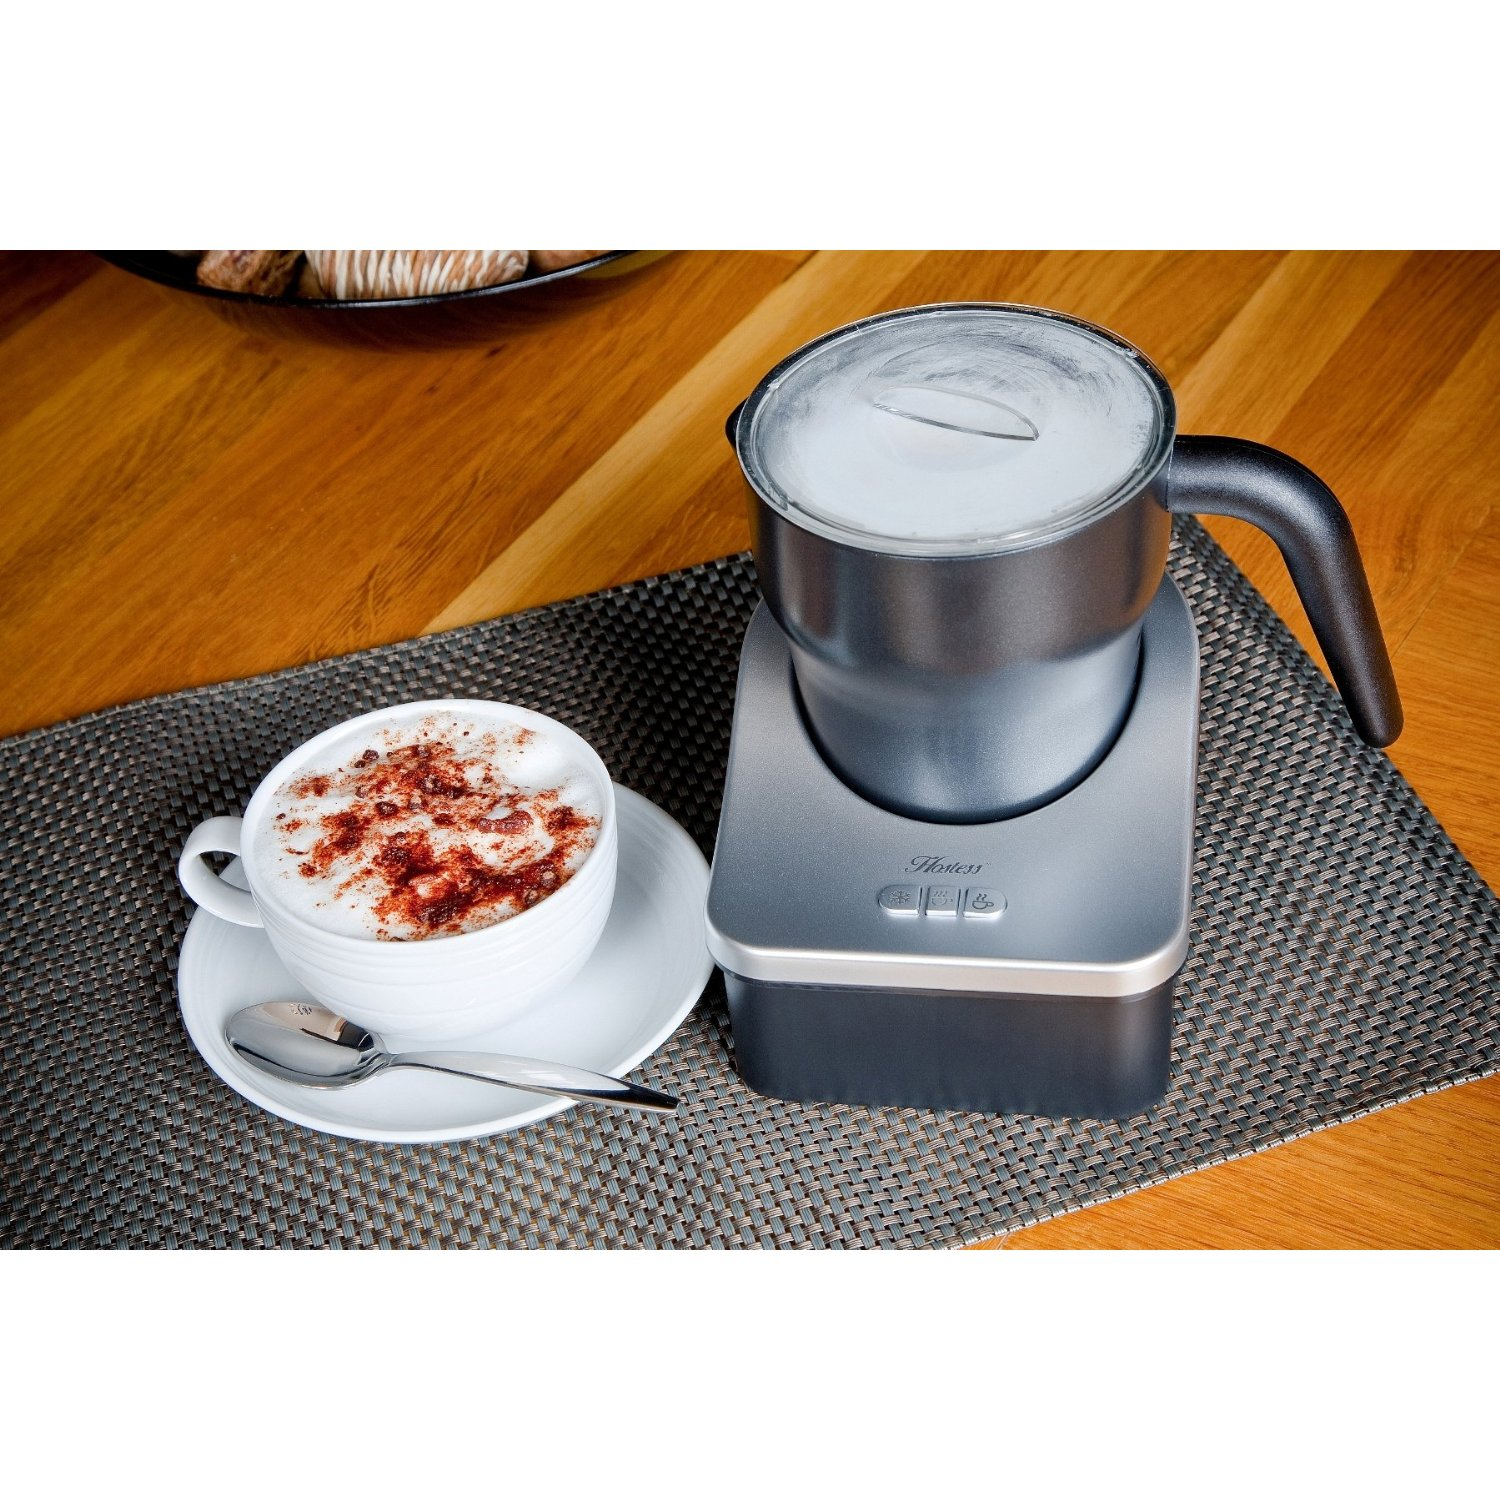 how to make hot chocolate with dualit milk frother